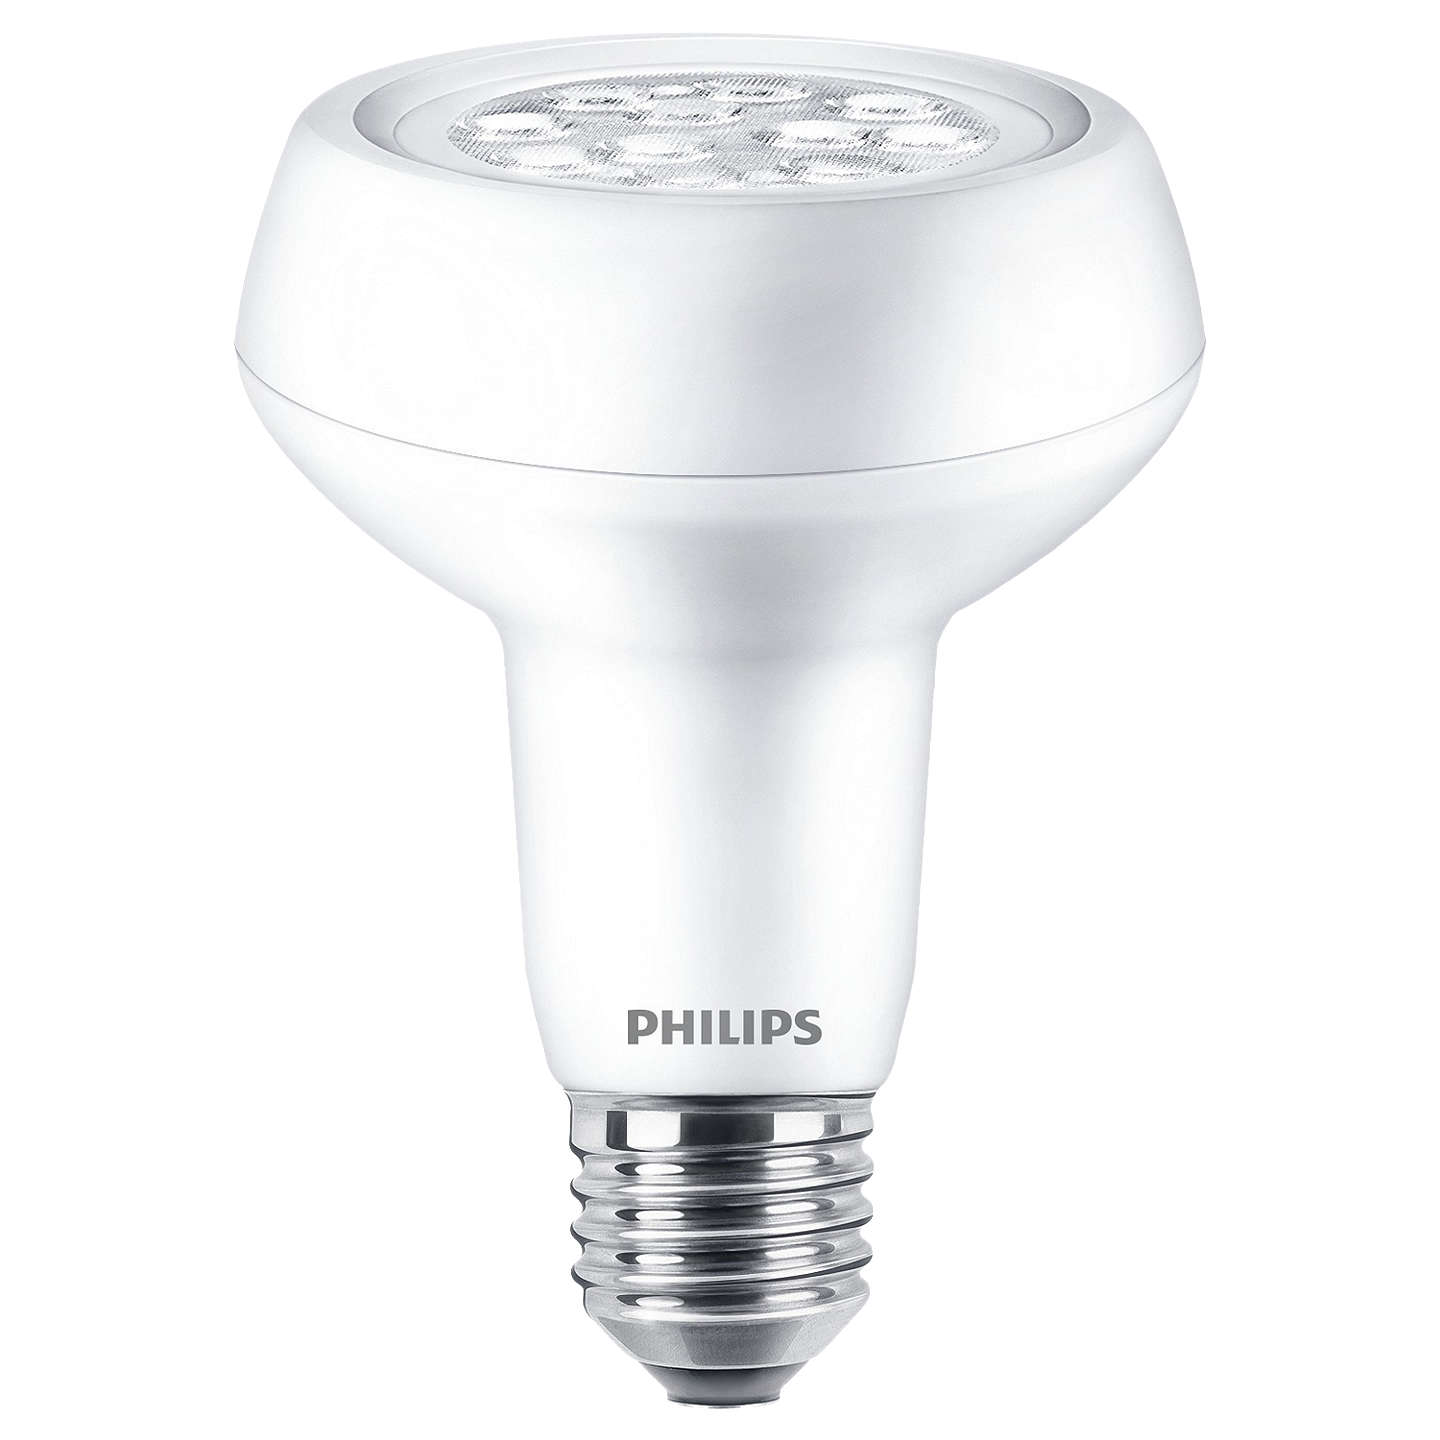 BuyPhilips 7W LED Energy Efficient ES R80 Reflector Bulb, Non Dimmable Online at johnlewis.com